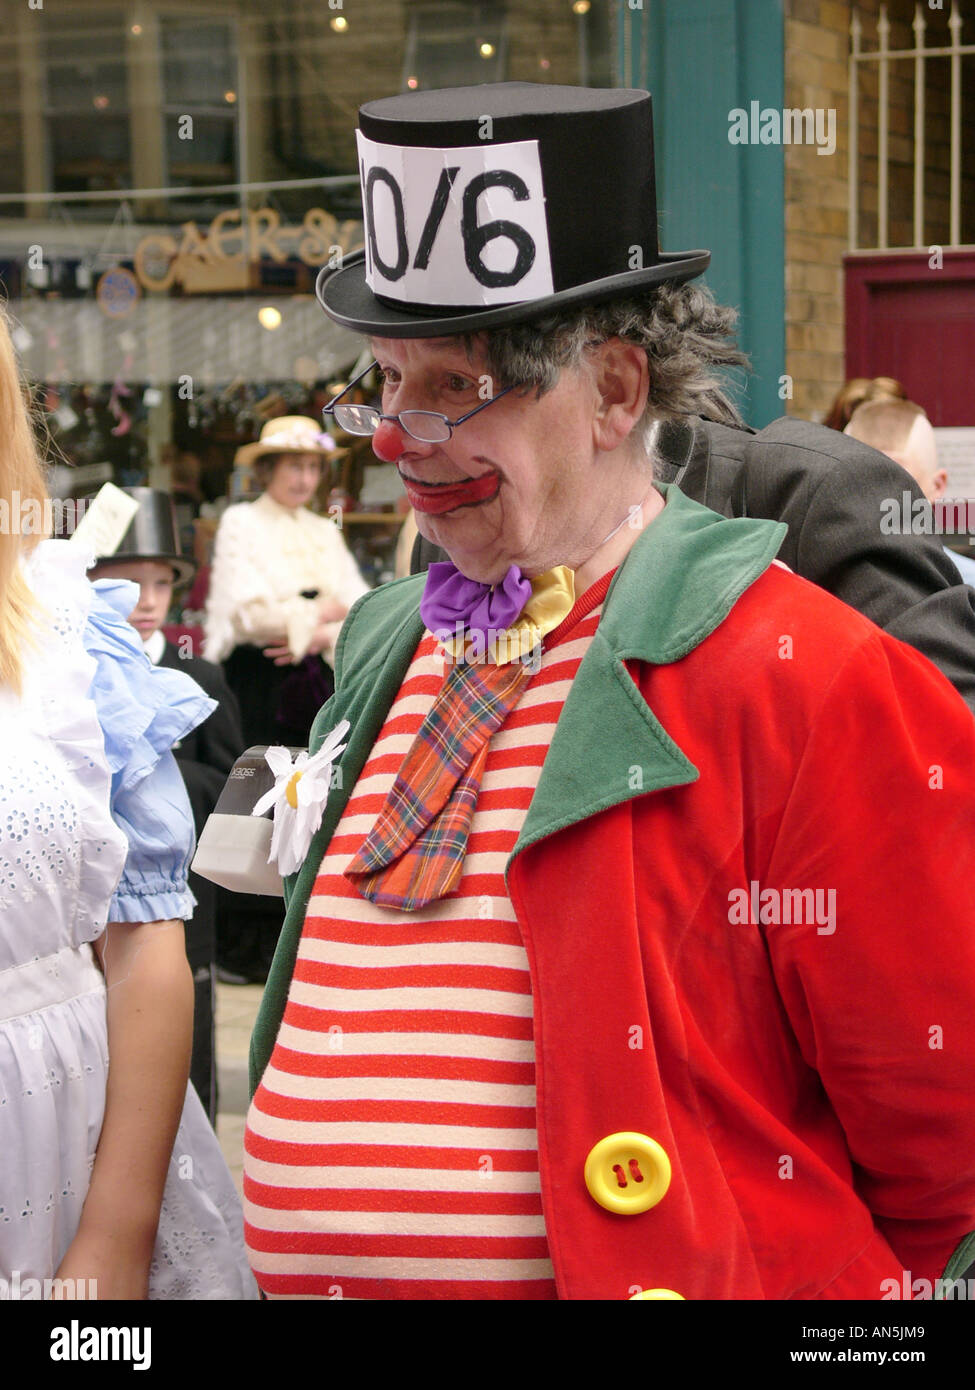 Llandrindod Wells victorian festival Powys Wales, man dressed up as the mad hatter, a character from Alice in Wonderland, UK - Stock Image